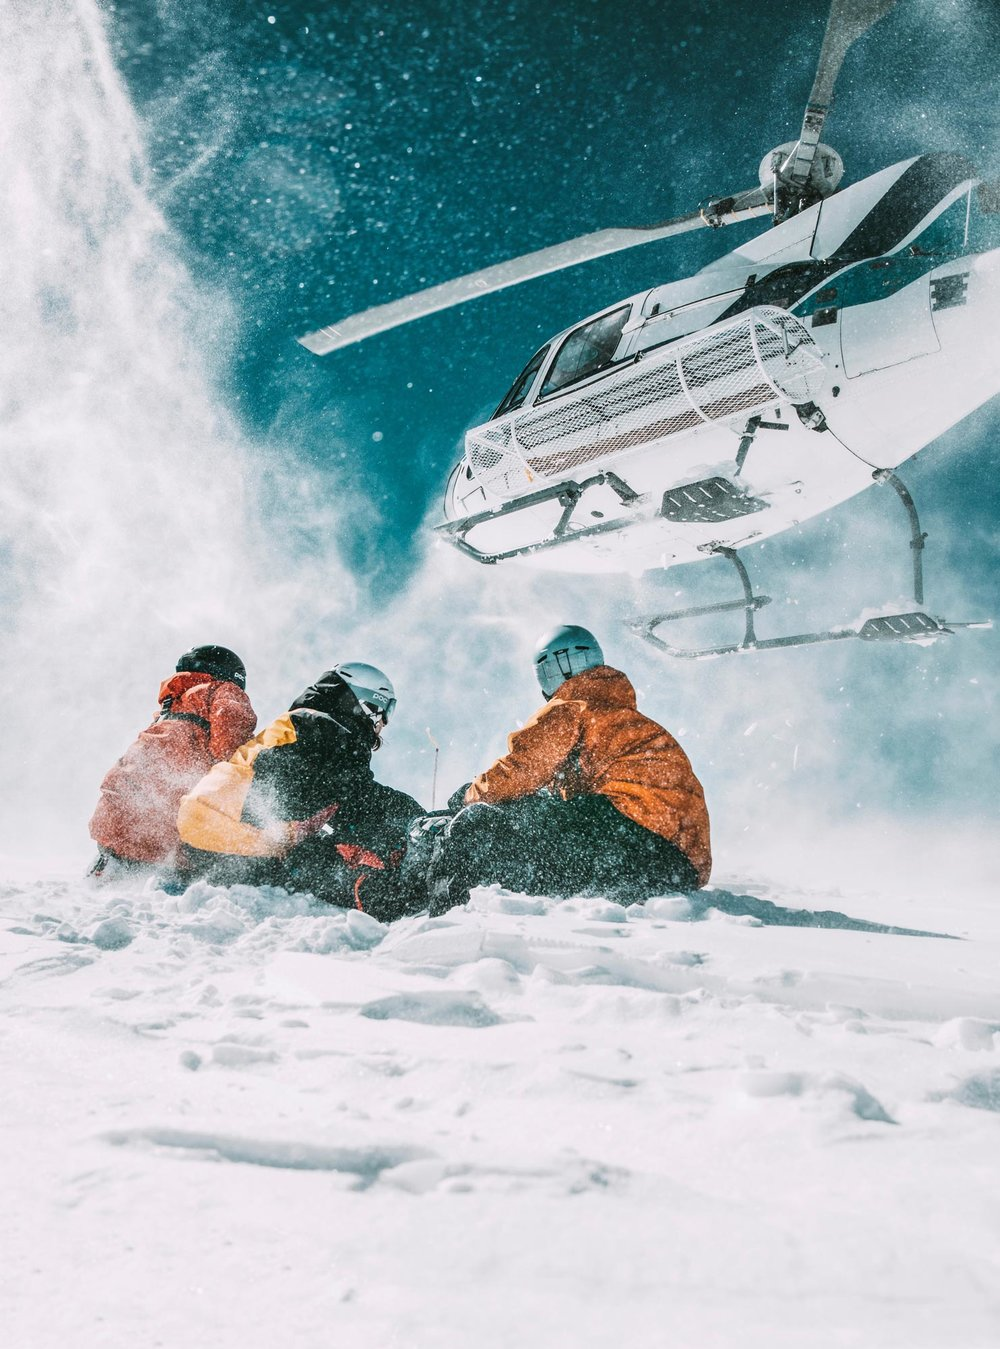 heliskiing in kashmir - gusav wiking for poc / skarp photography